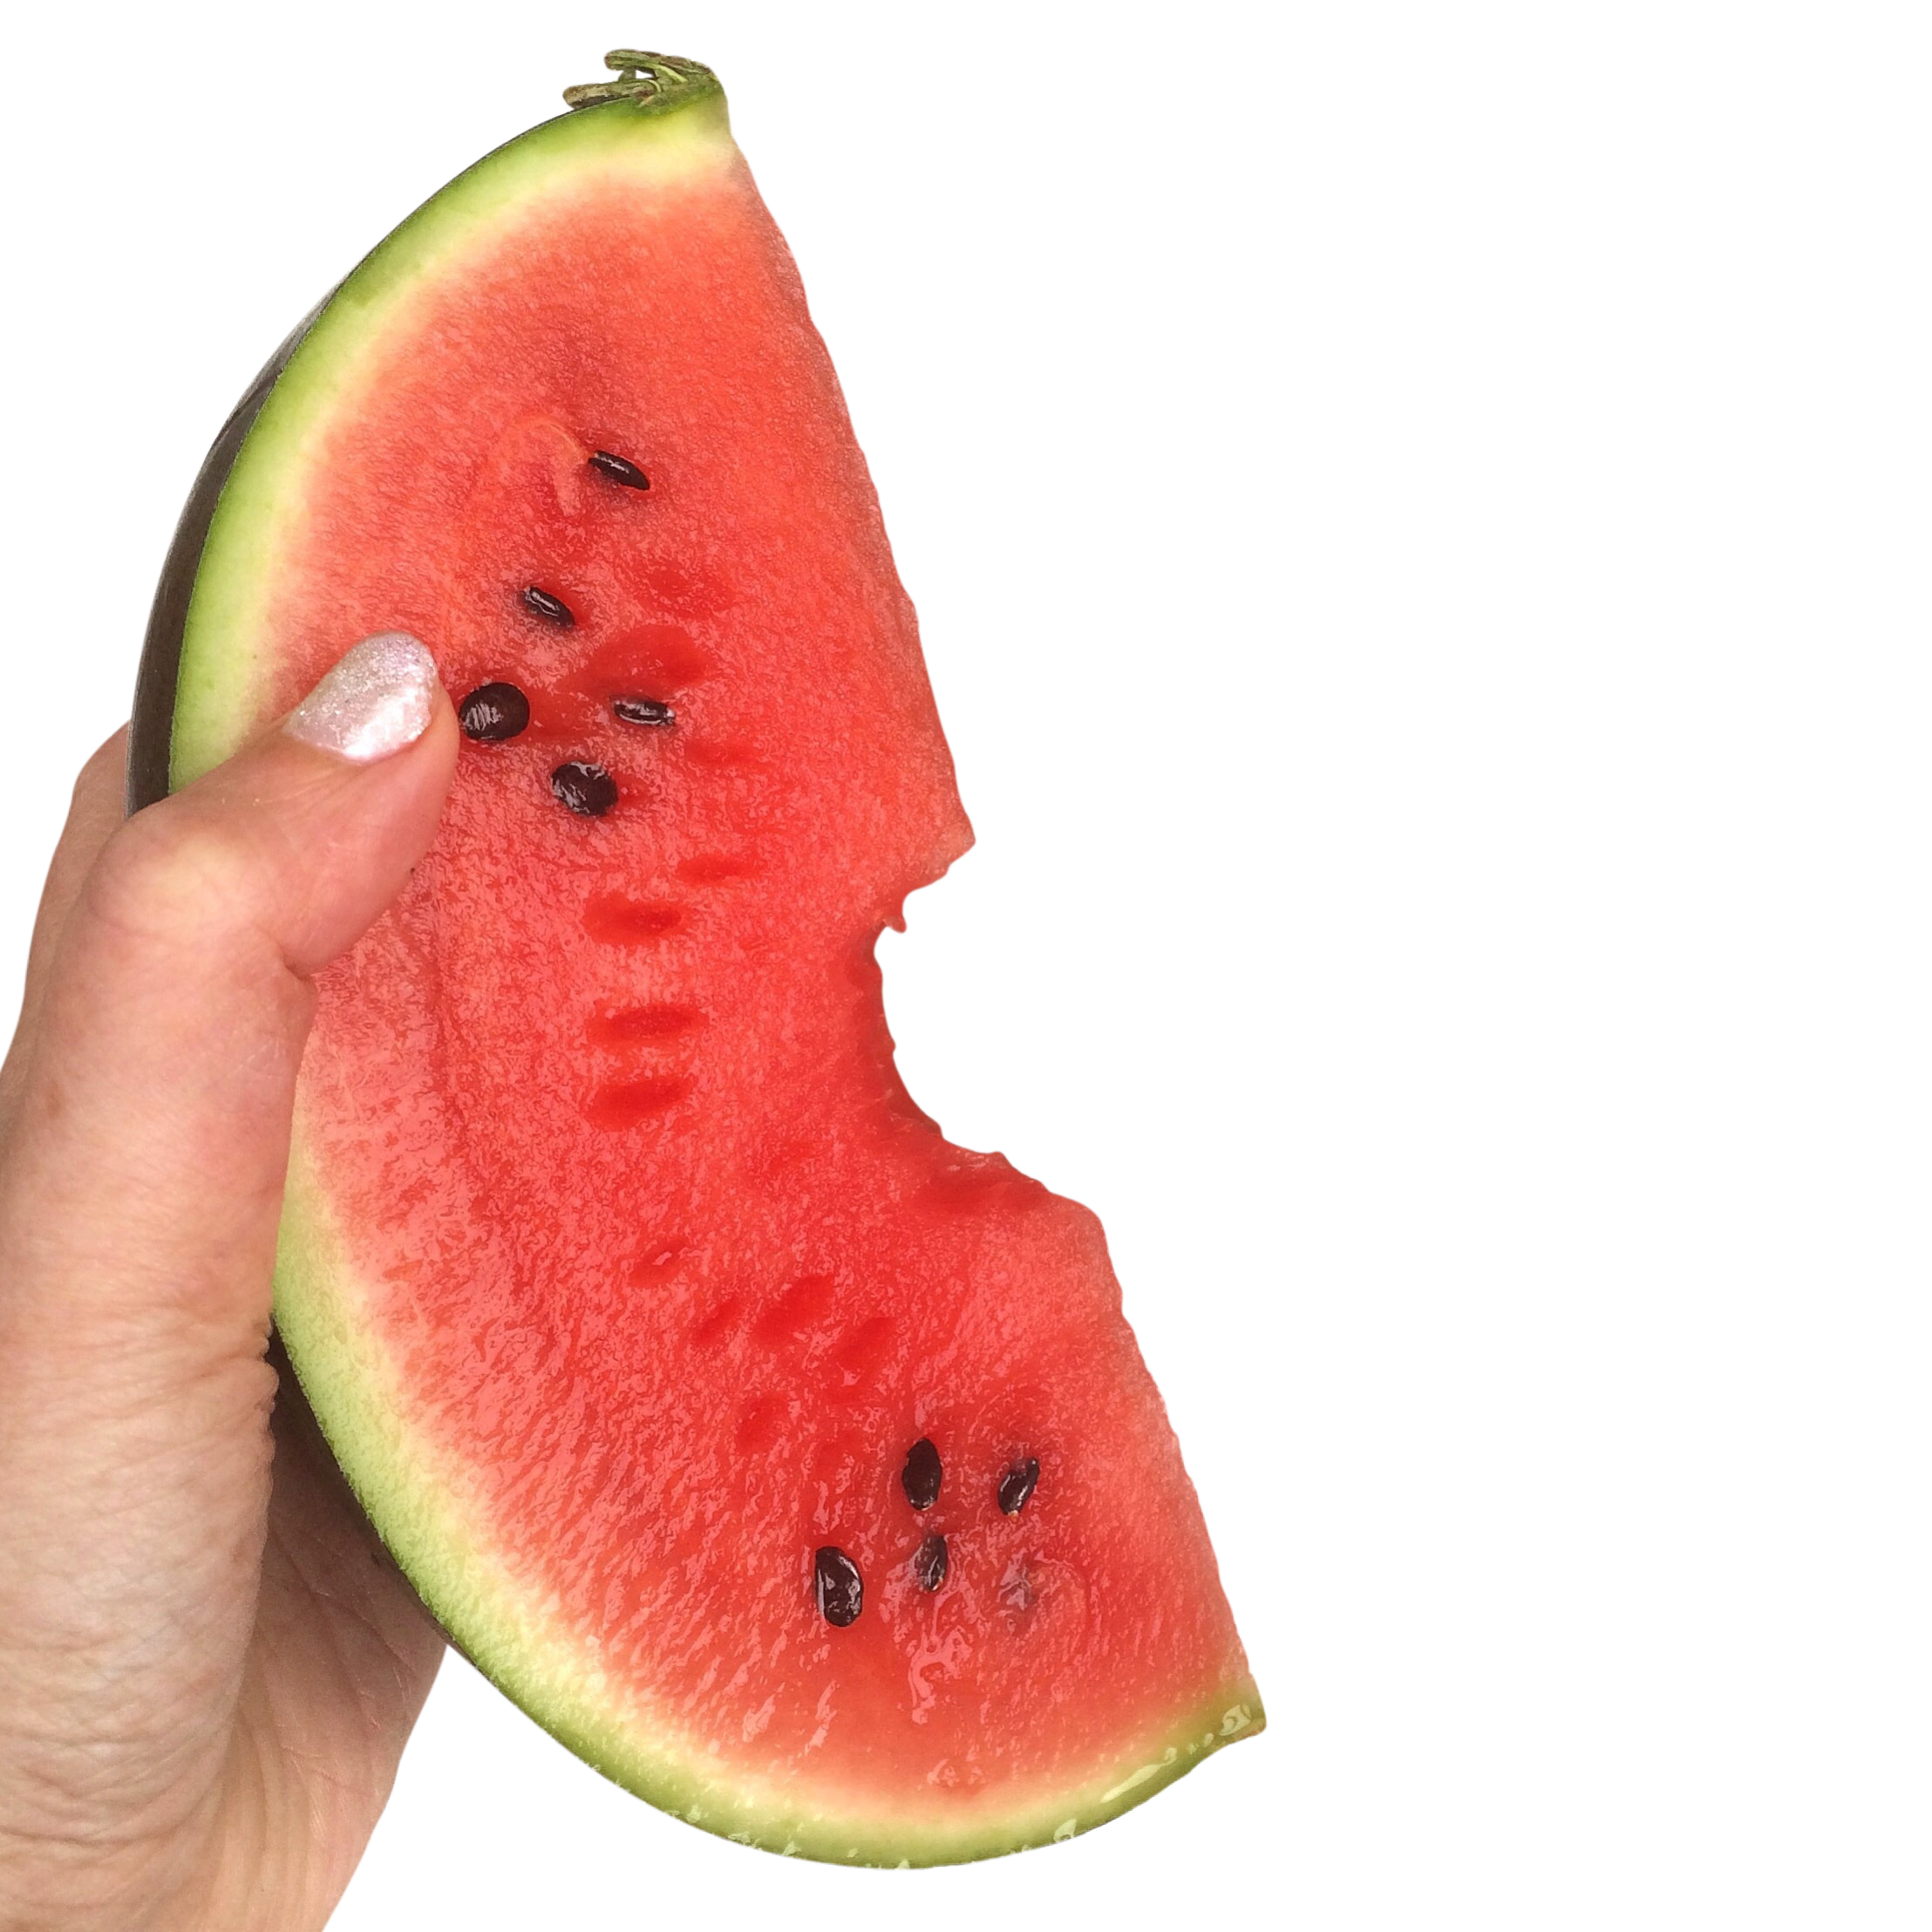 Watermelon in a Hand PNG Image